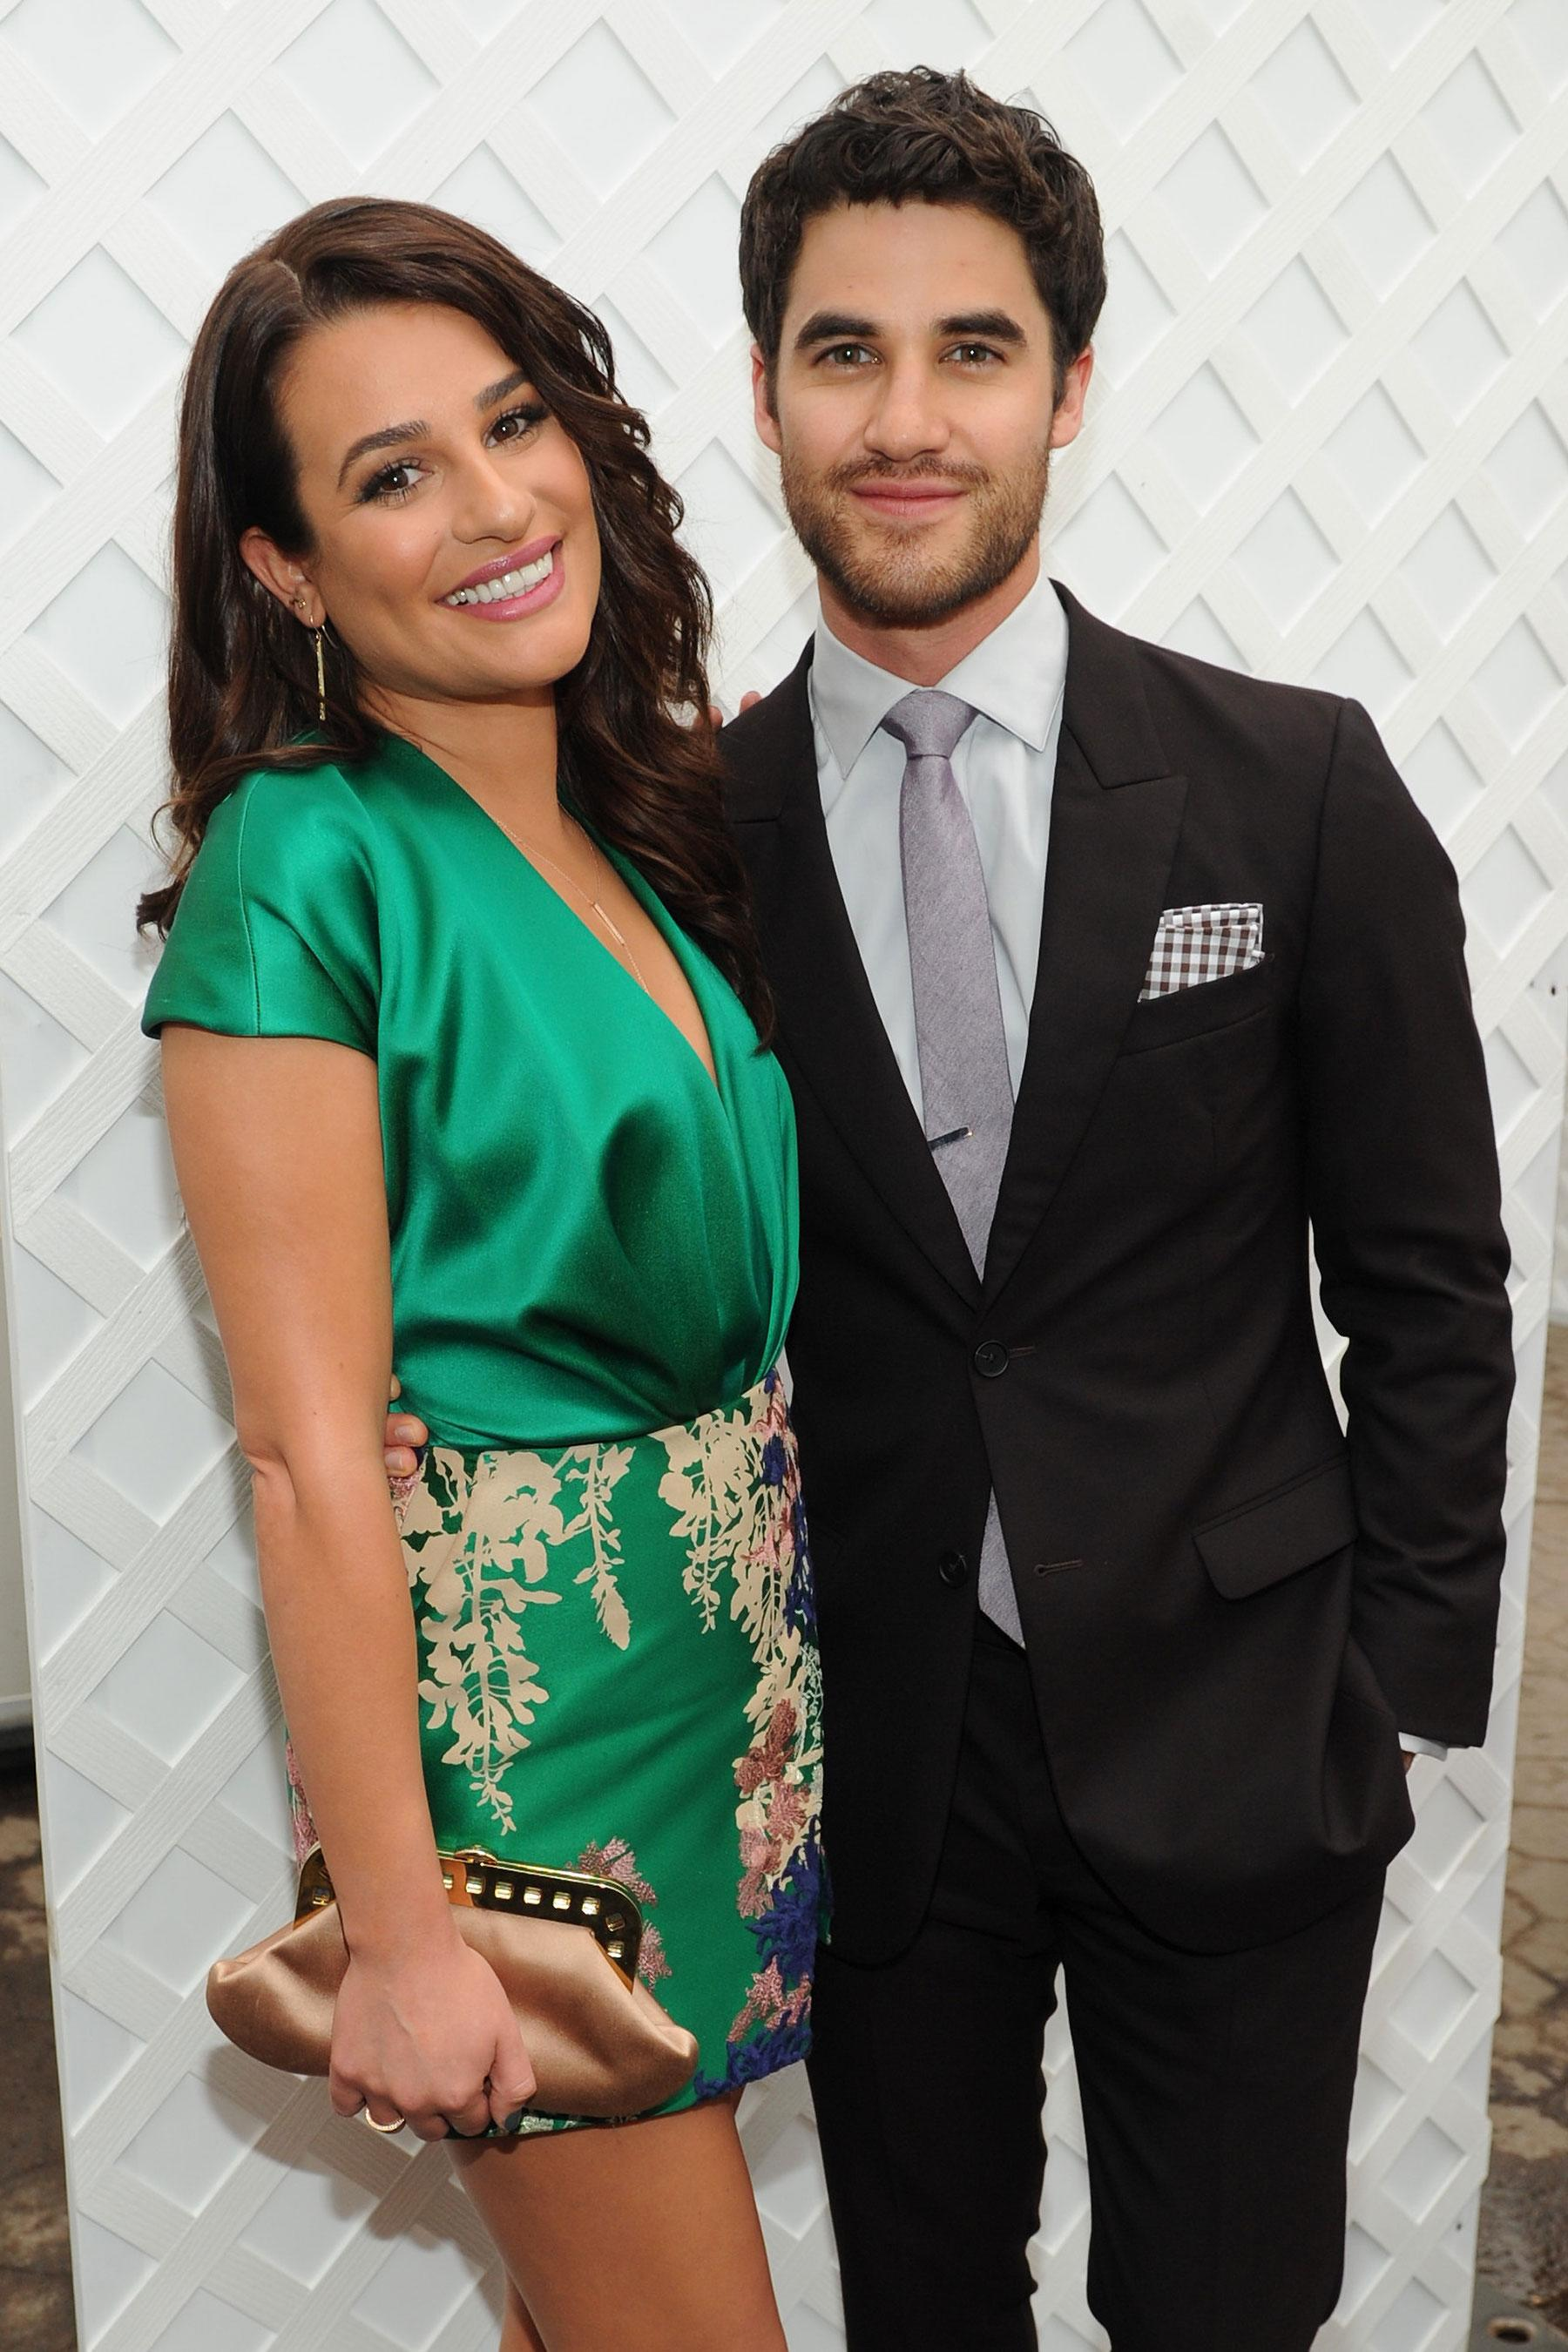 Lea Michele Says It's 'Really Special' Planning a Wedding at the Same Time as Darren Criss